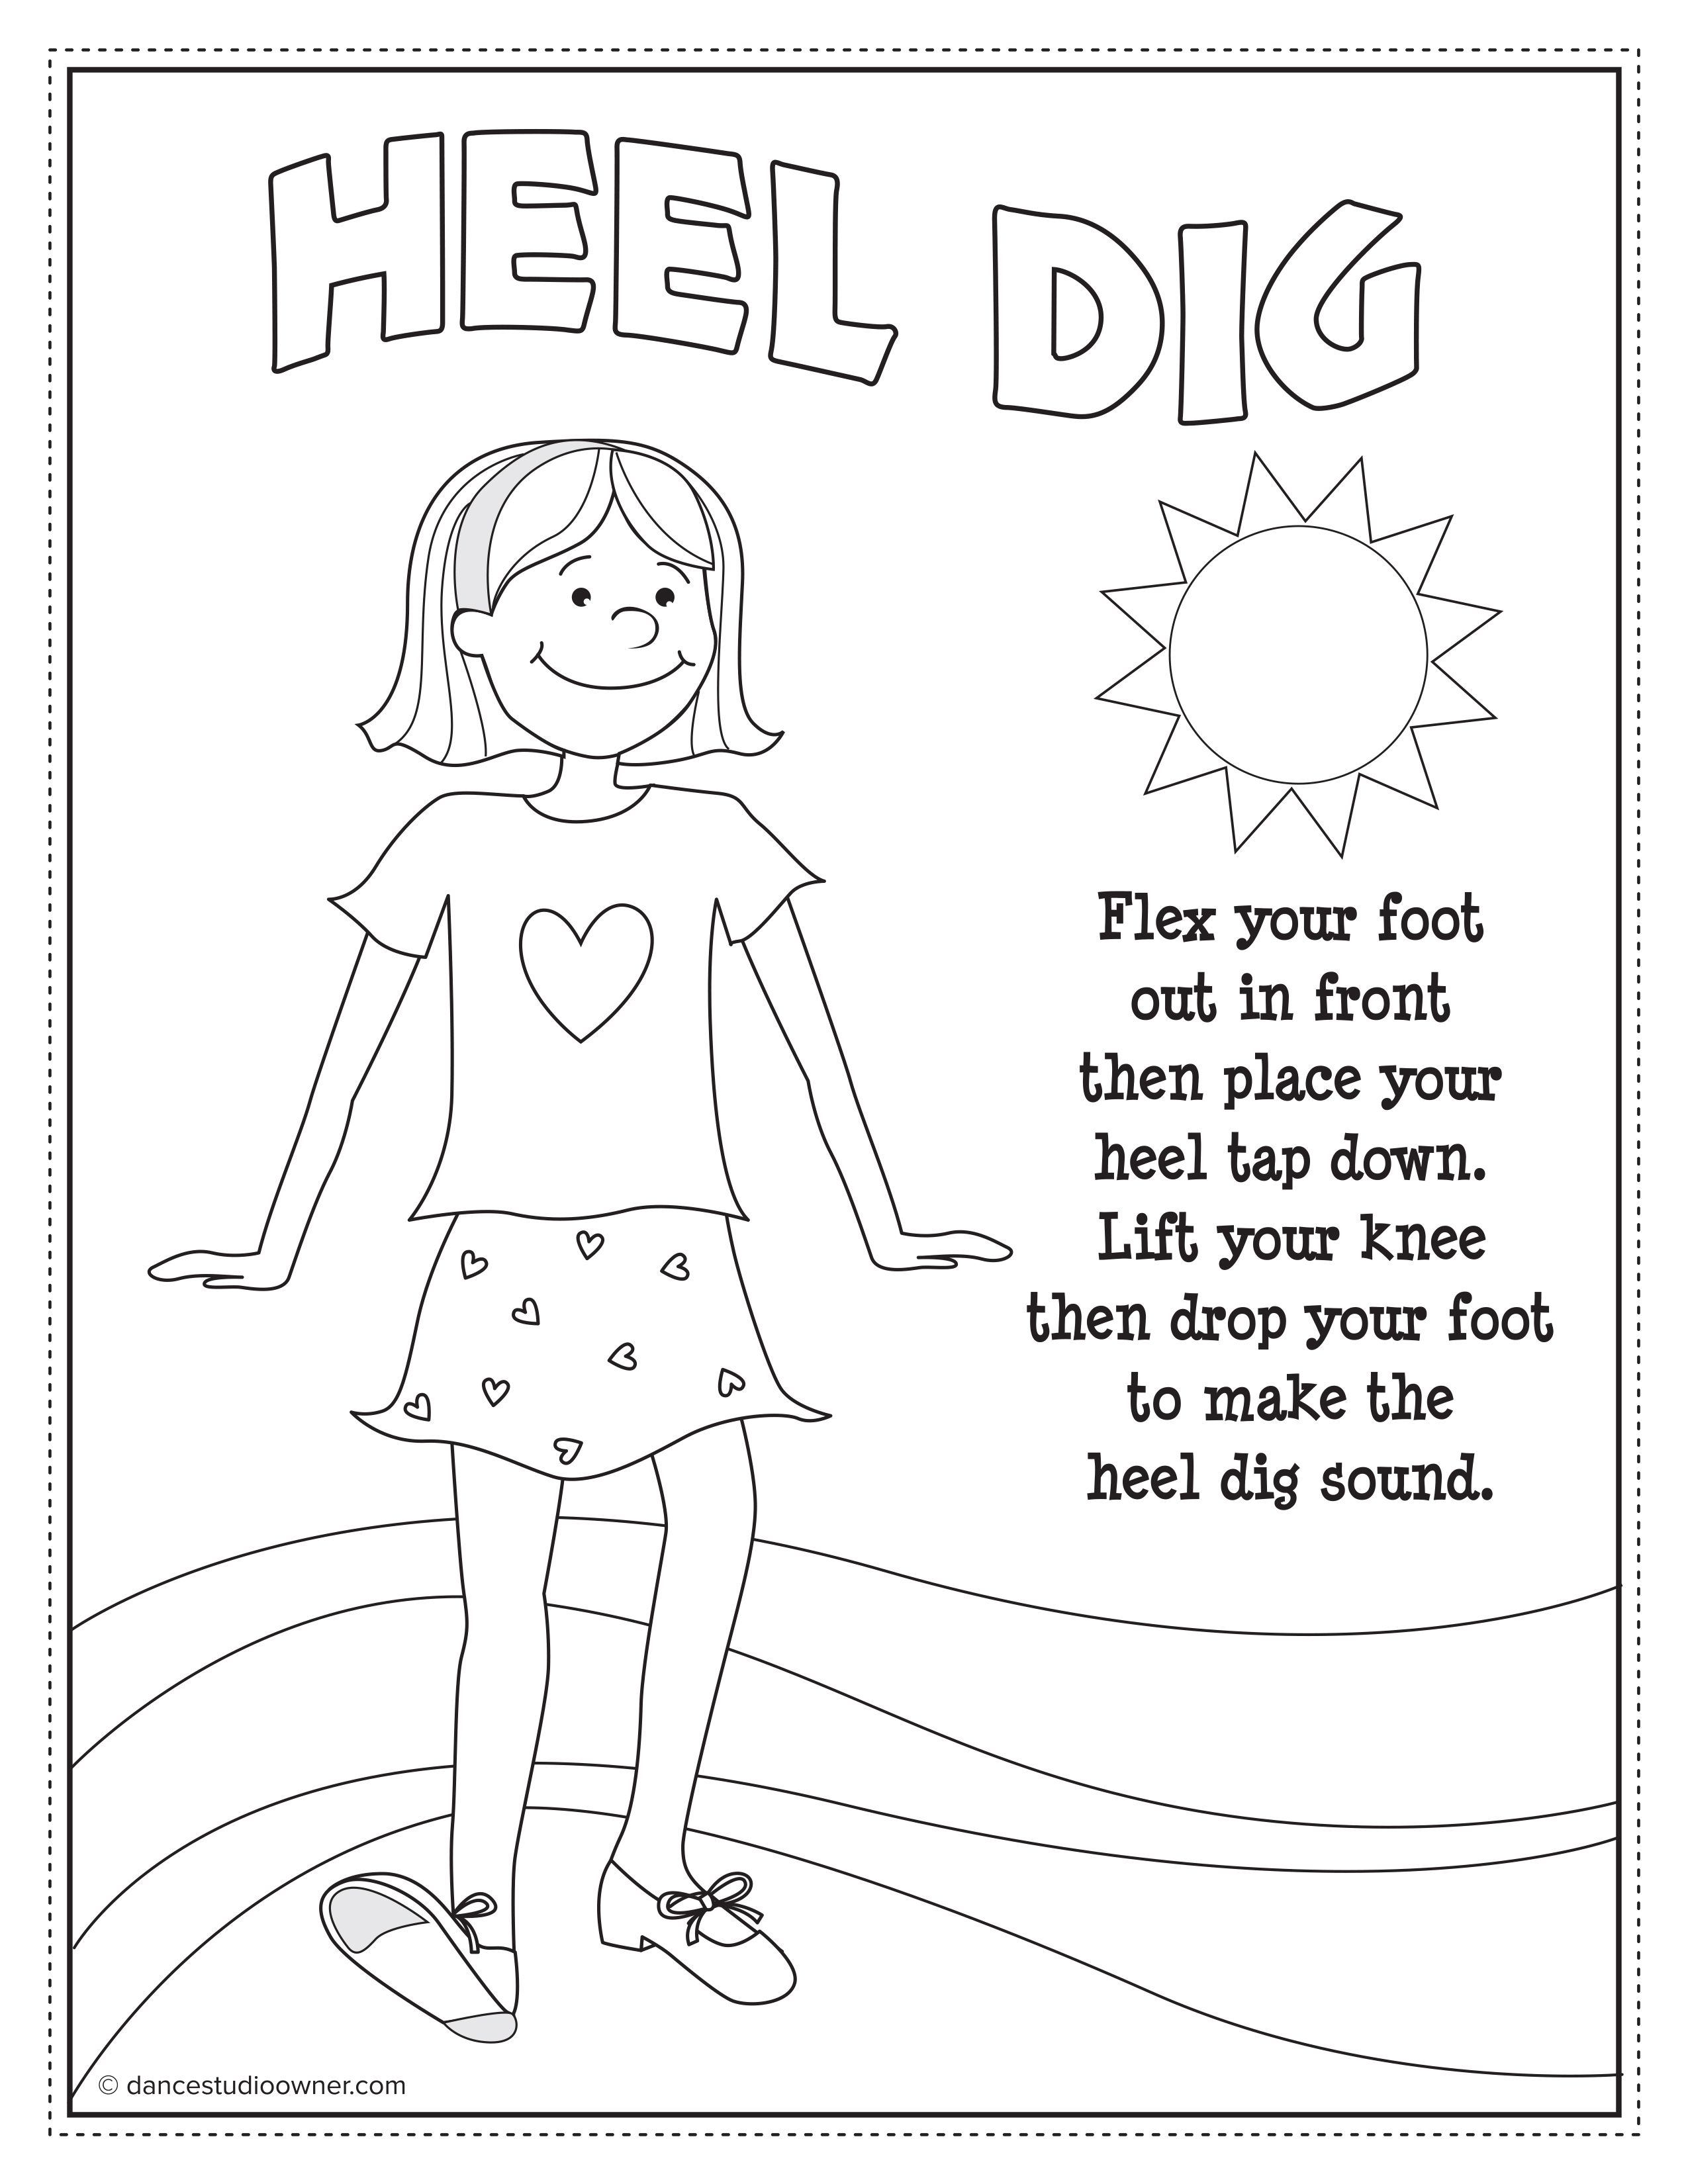 FREE Tap Dancing Printable Coloring Pages From DanceStudioOwner